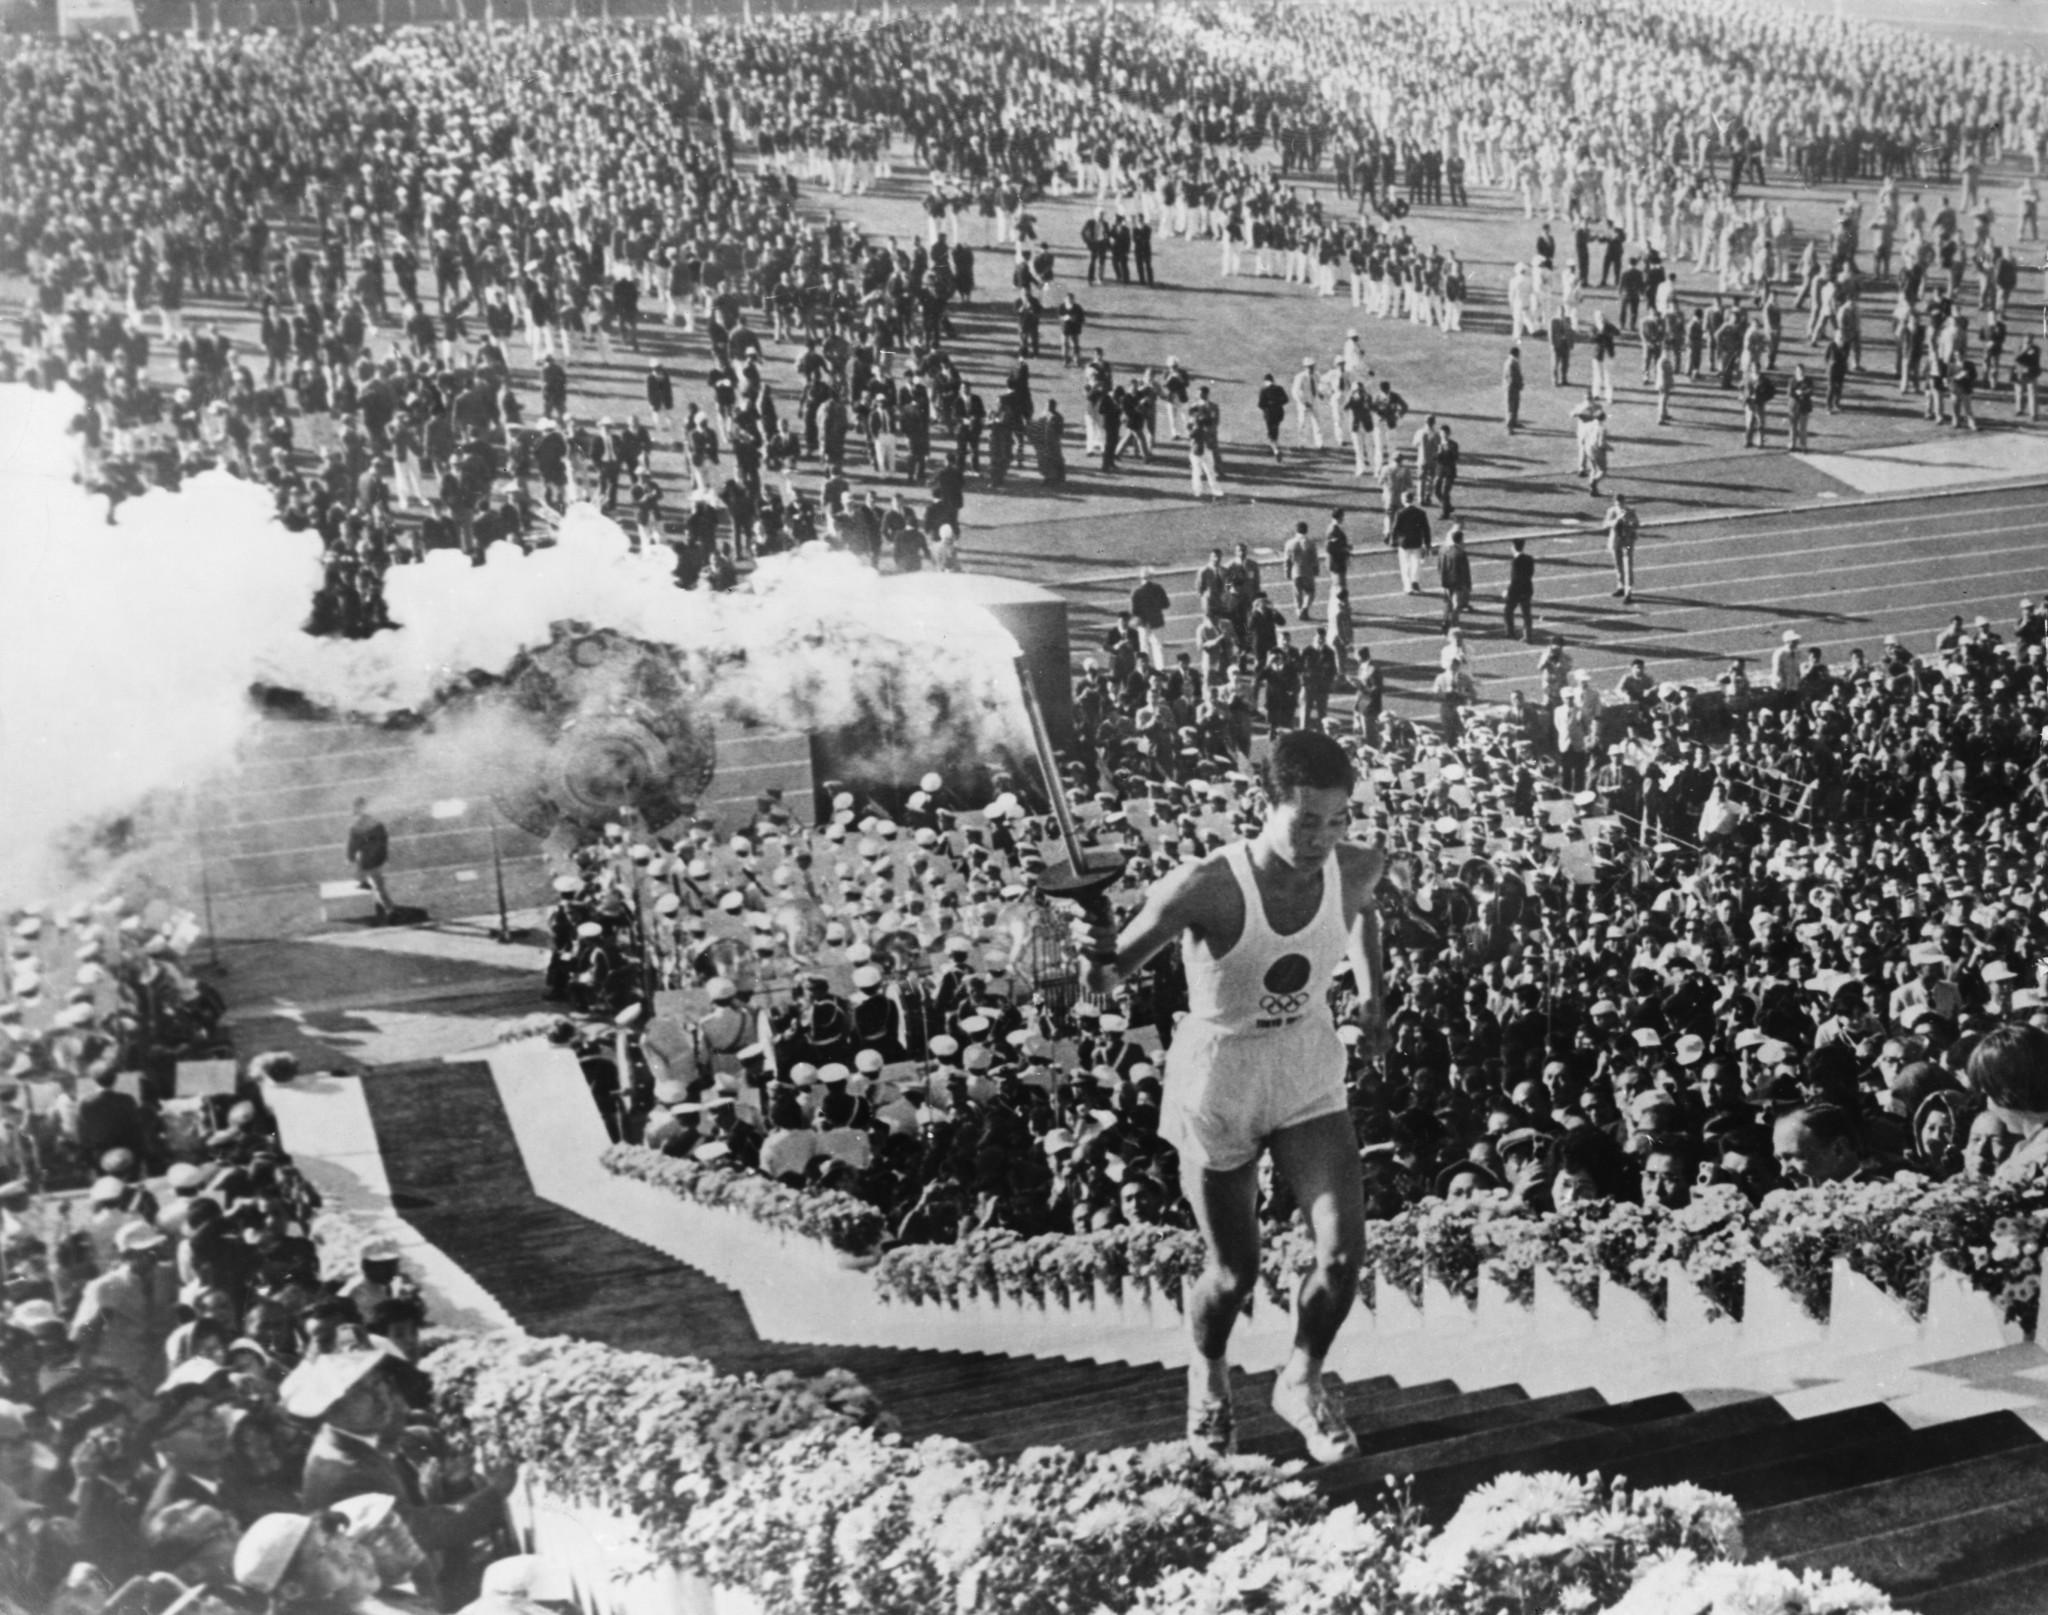 The Torch Relay for the 1964 Olympic Games started in Okinawa before travelling to Tokyo ©Getty Images